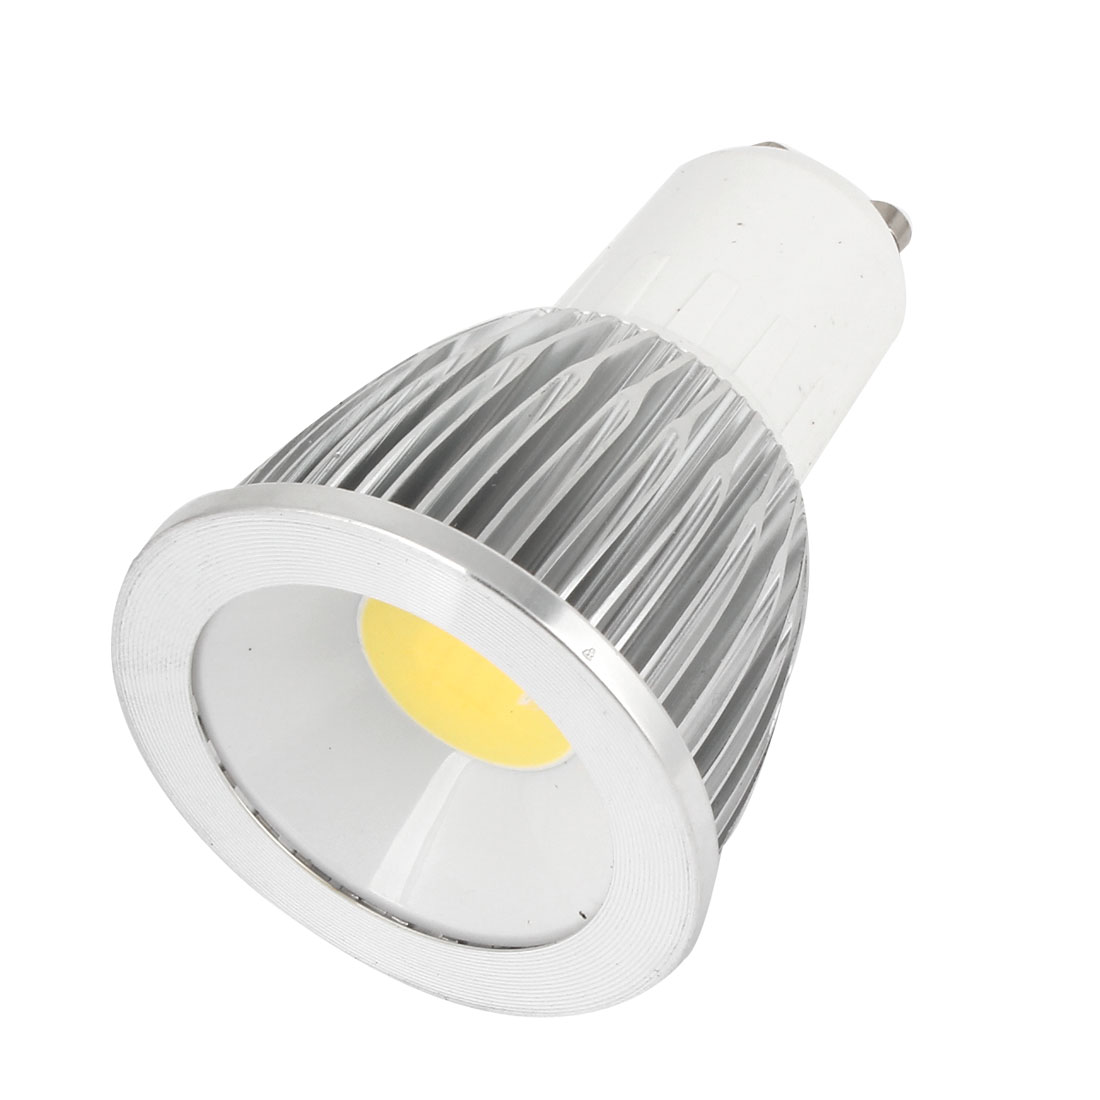 AC 85-265V 9W 600-650LM GU10 Dimmable White Light COB LED Downlight Spotlight